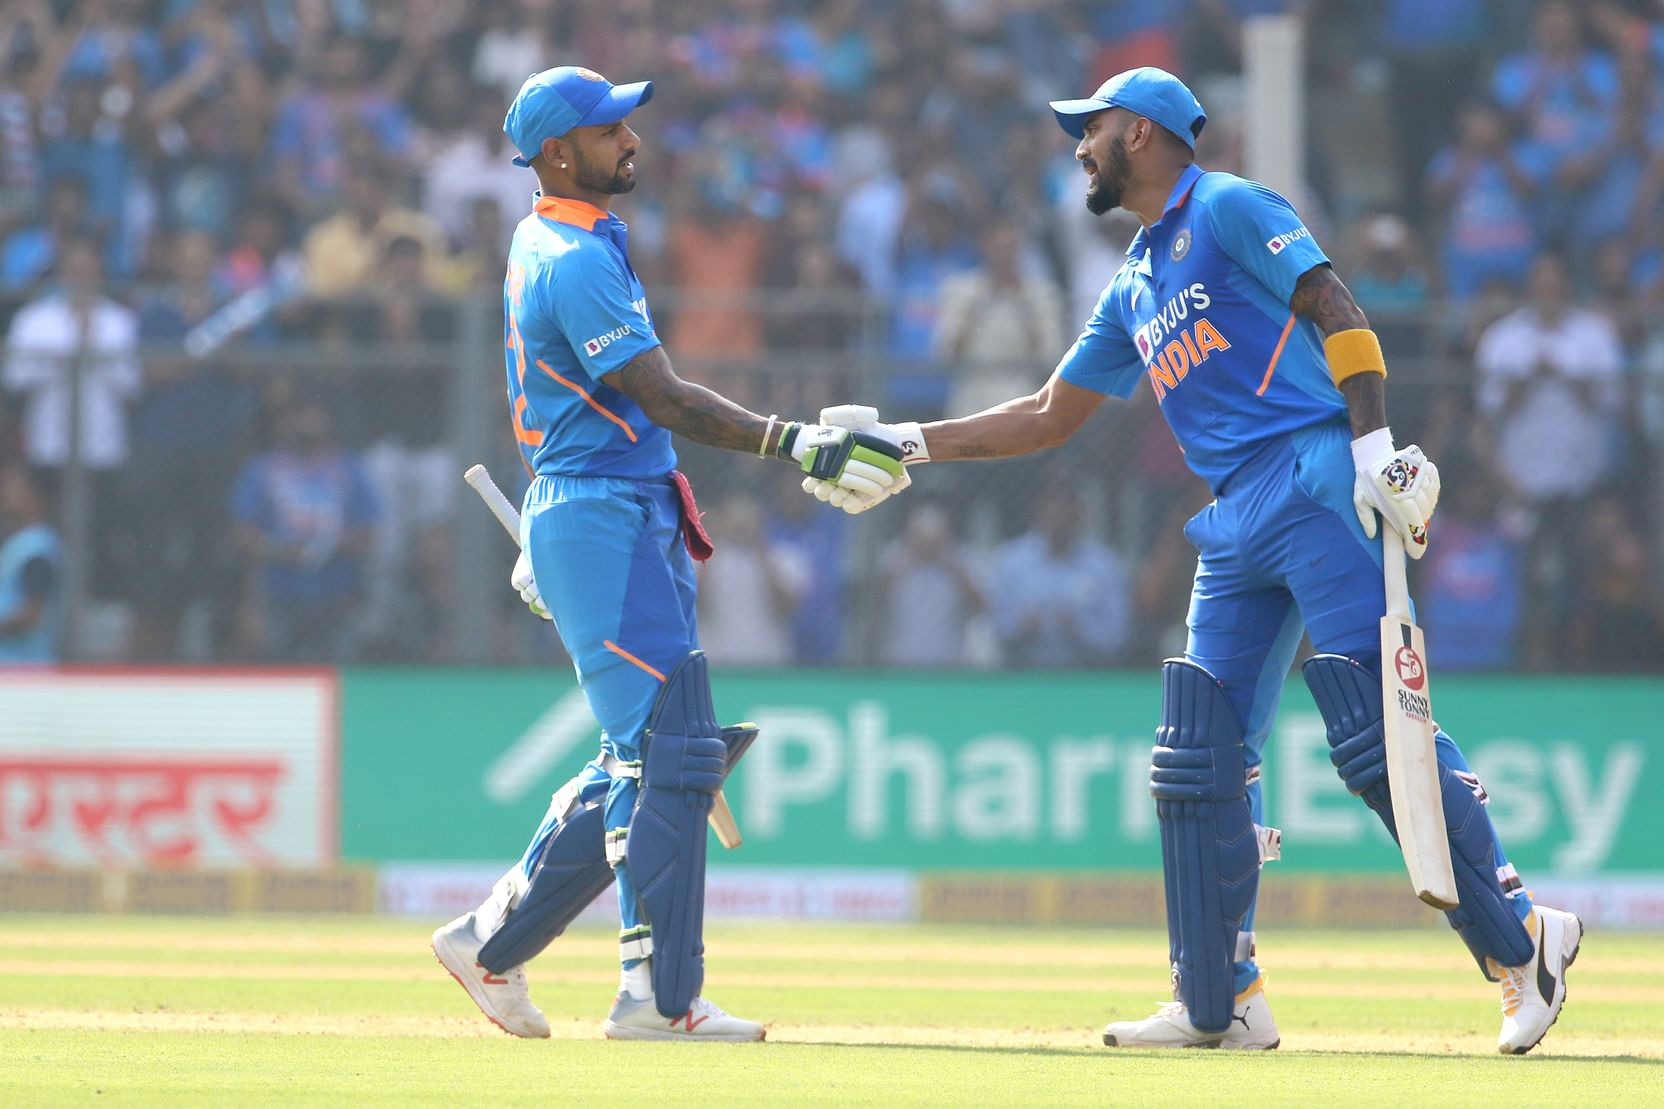 Dhavan and KL Rahul